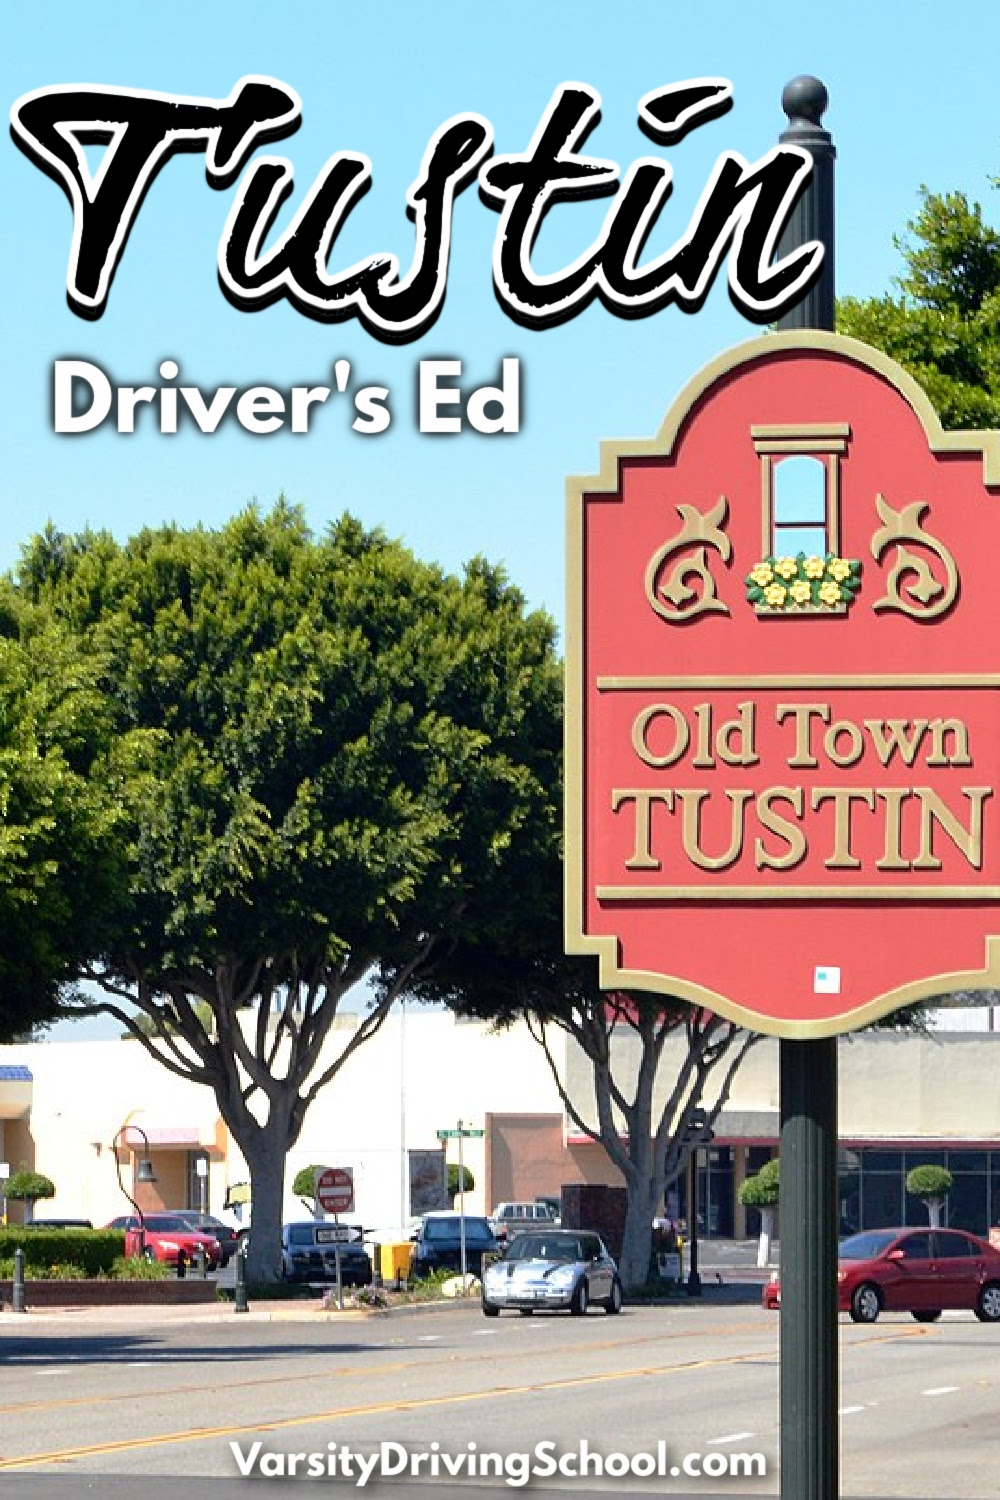 Students can attend Varsity Driving Academy, the best Tustin drivers ed to learn how to drive in Tustin and beyond.